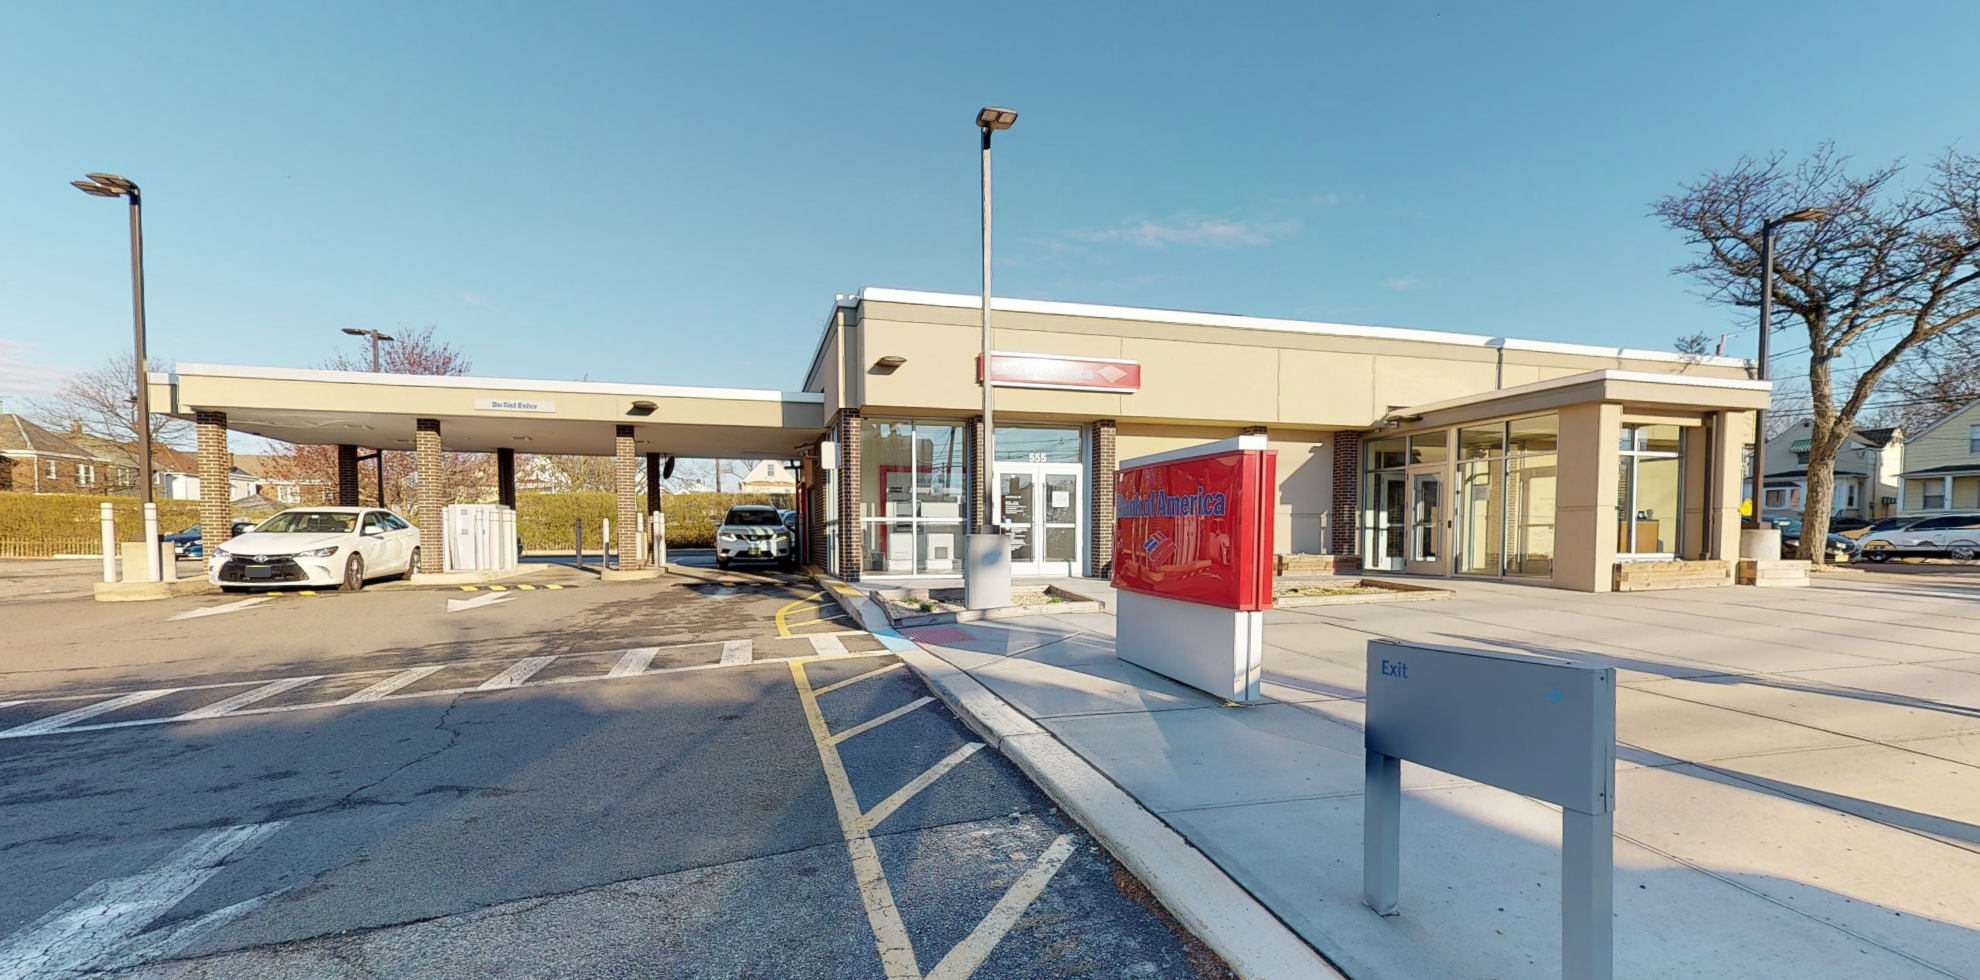 Bank of America financial center with drive-thru ATM | 555 Convery Blvd, Perth Amboy, NJ 08861